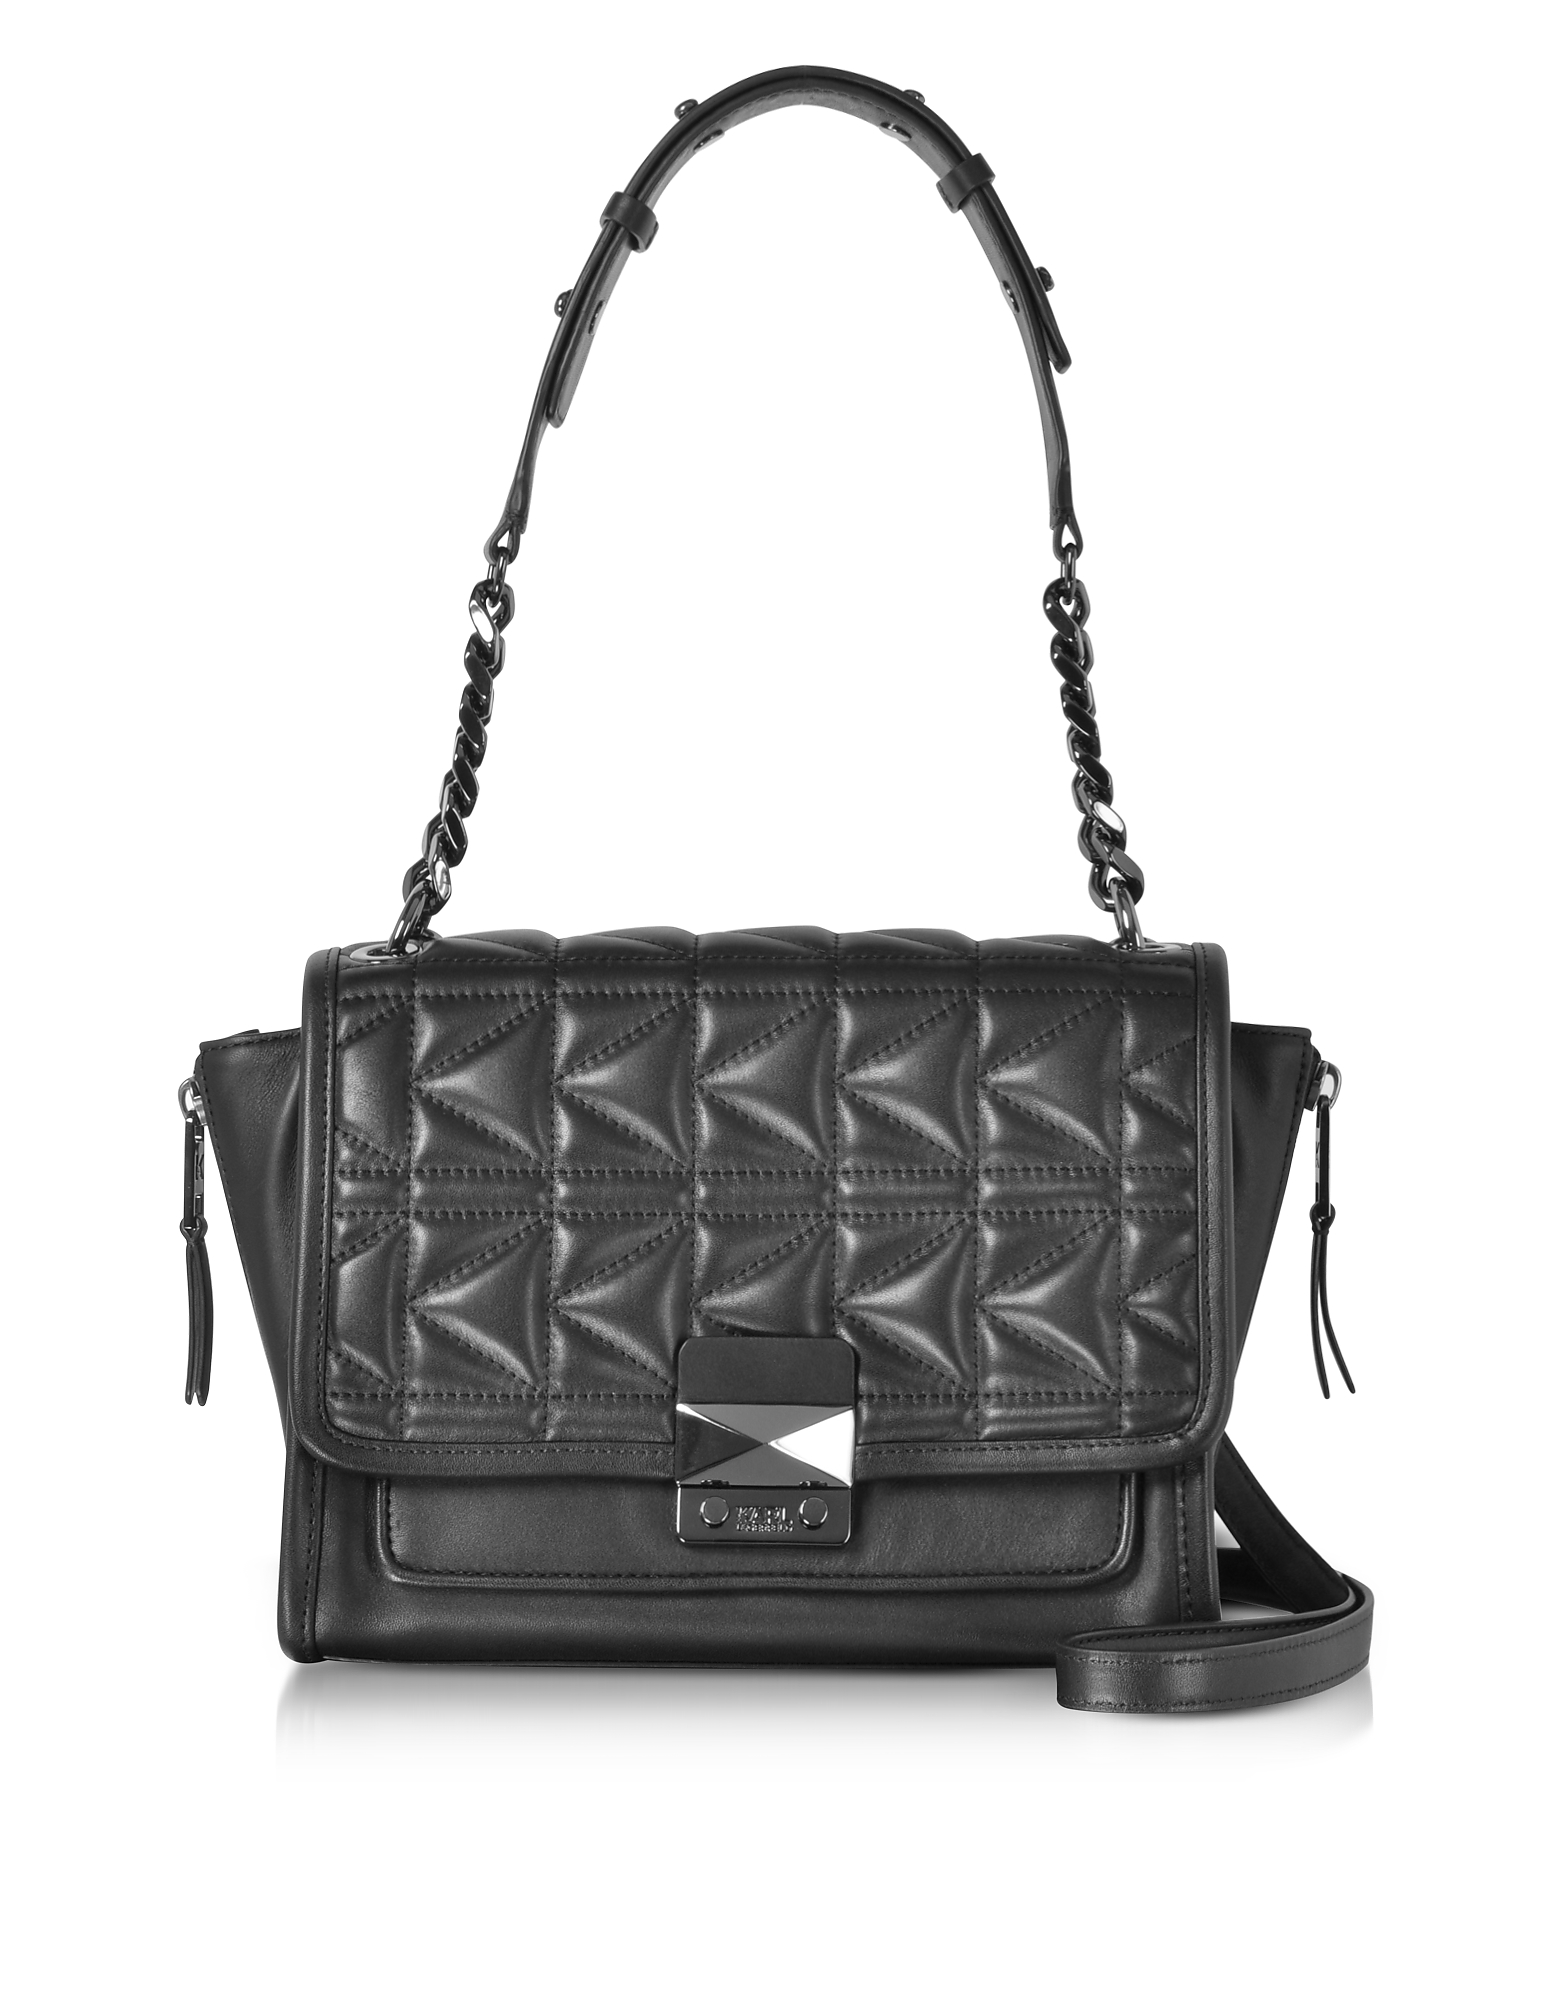 Karl Lagerfeld Handbags, K/Kuilted Black Leather Handbag